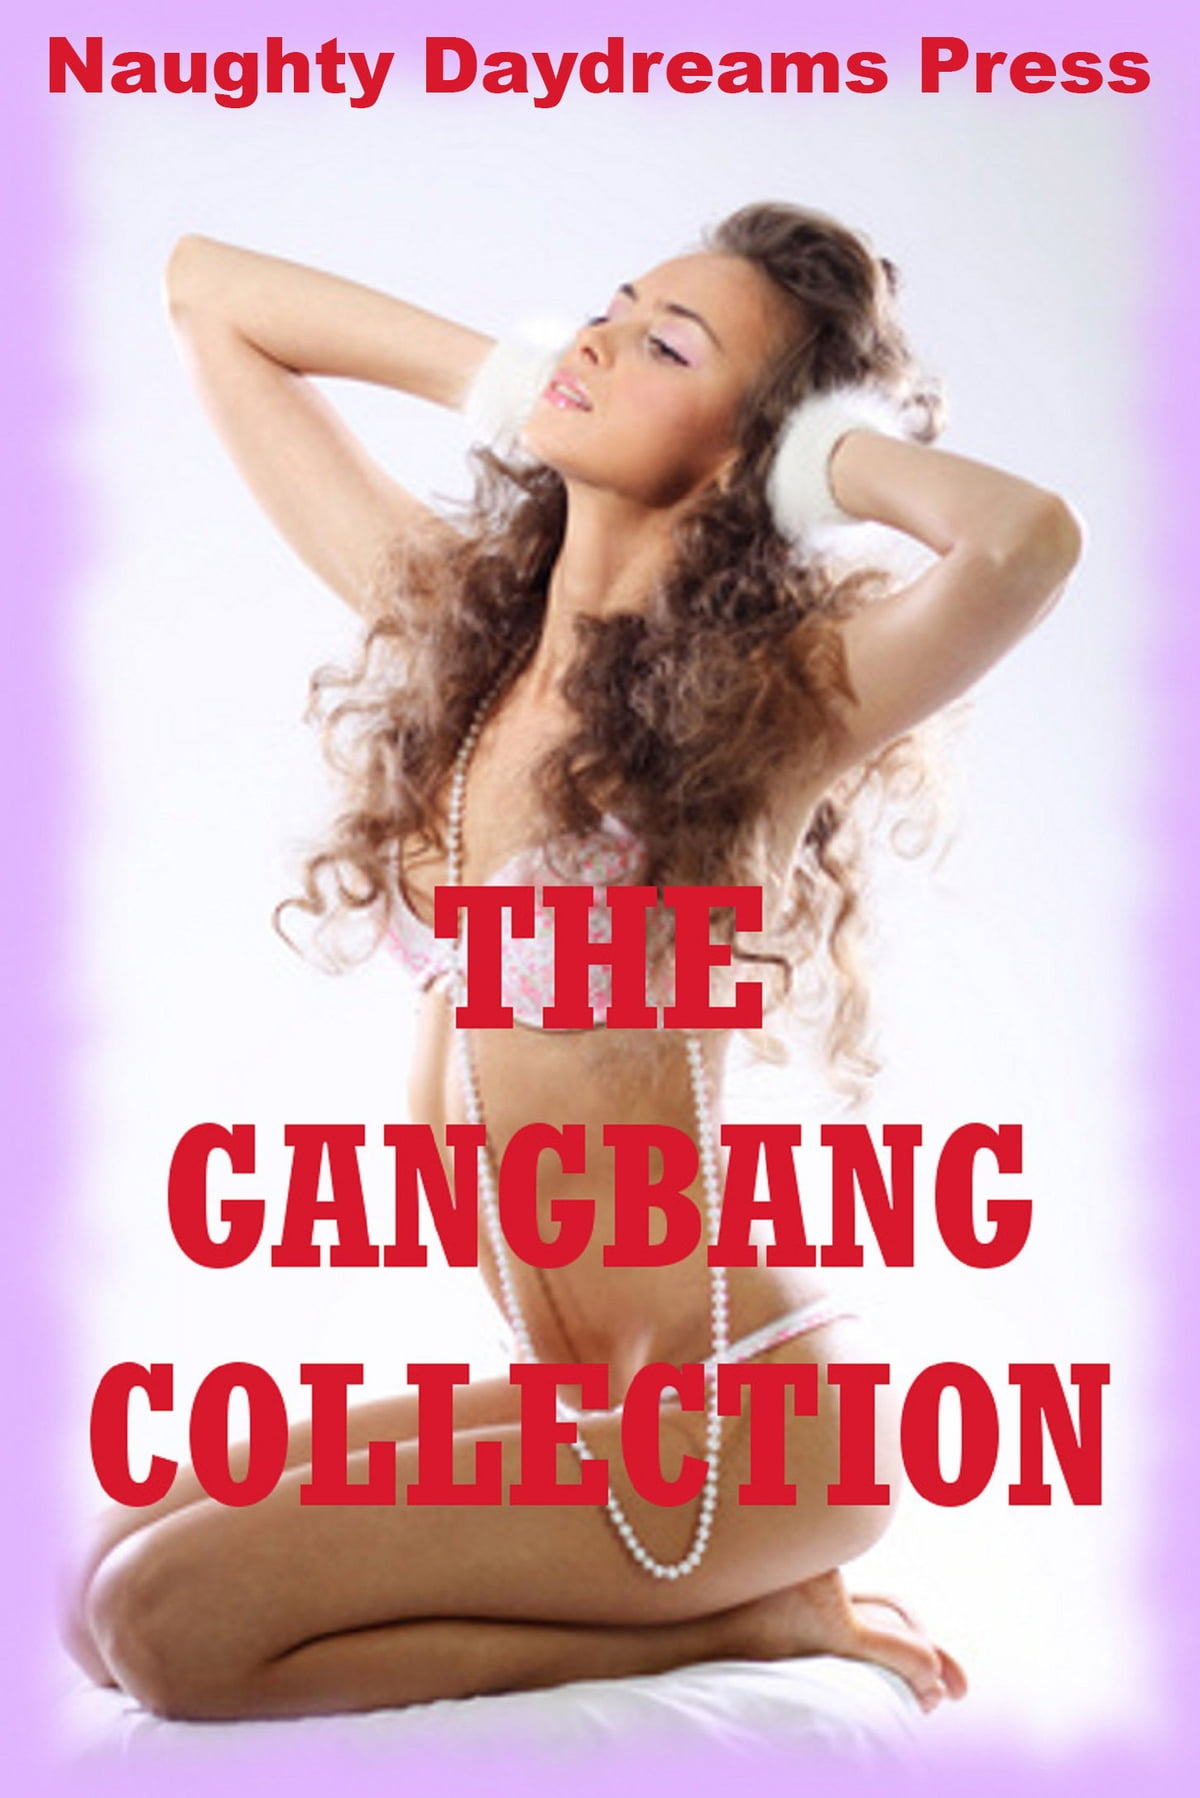 Gangbang Stories Erotic Teen Sex